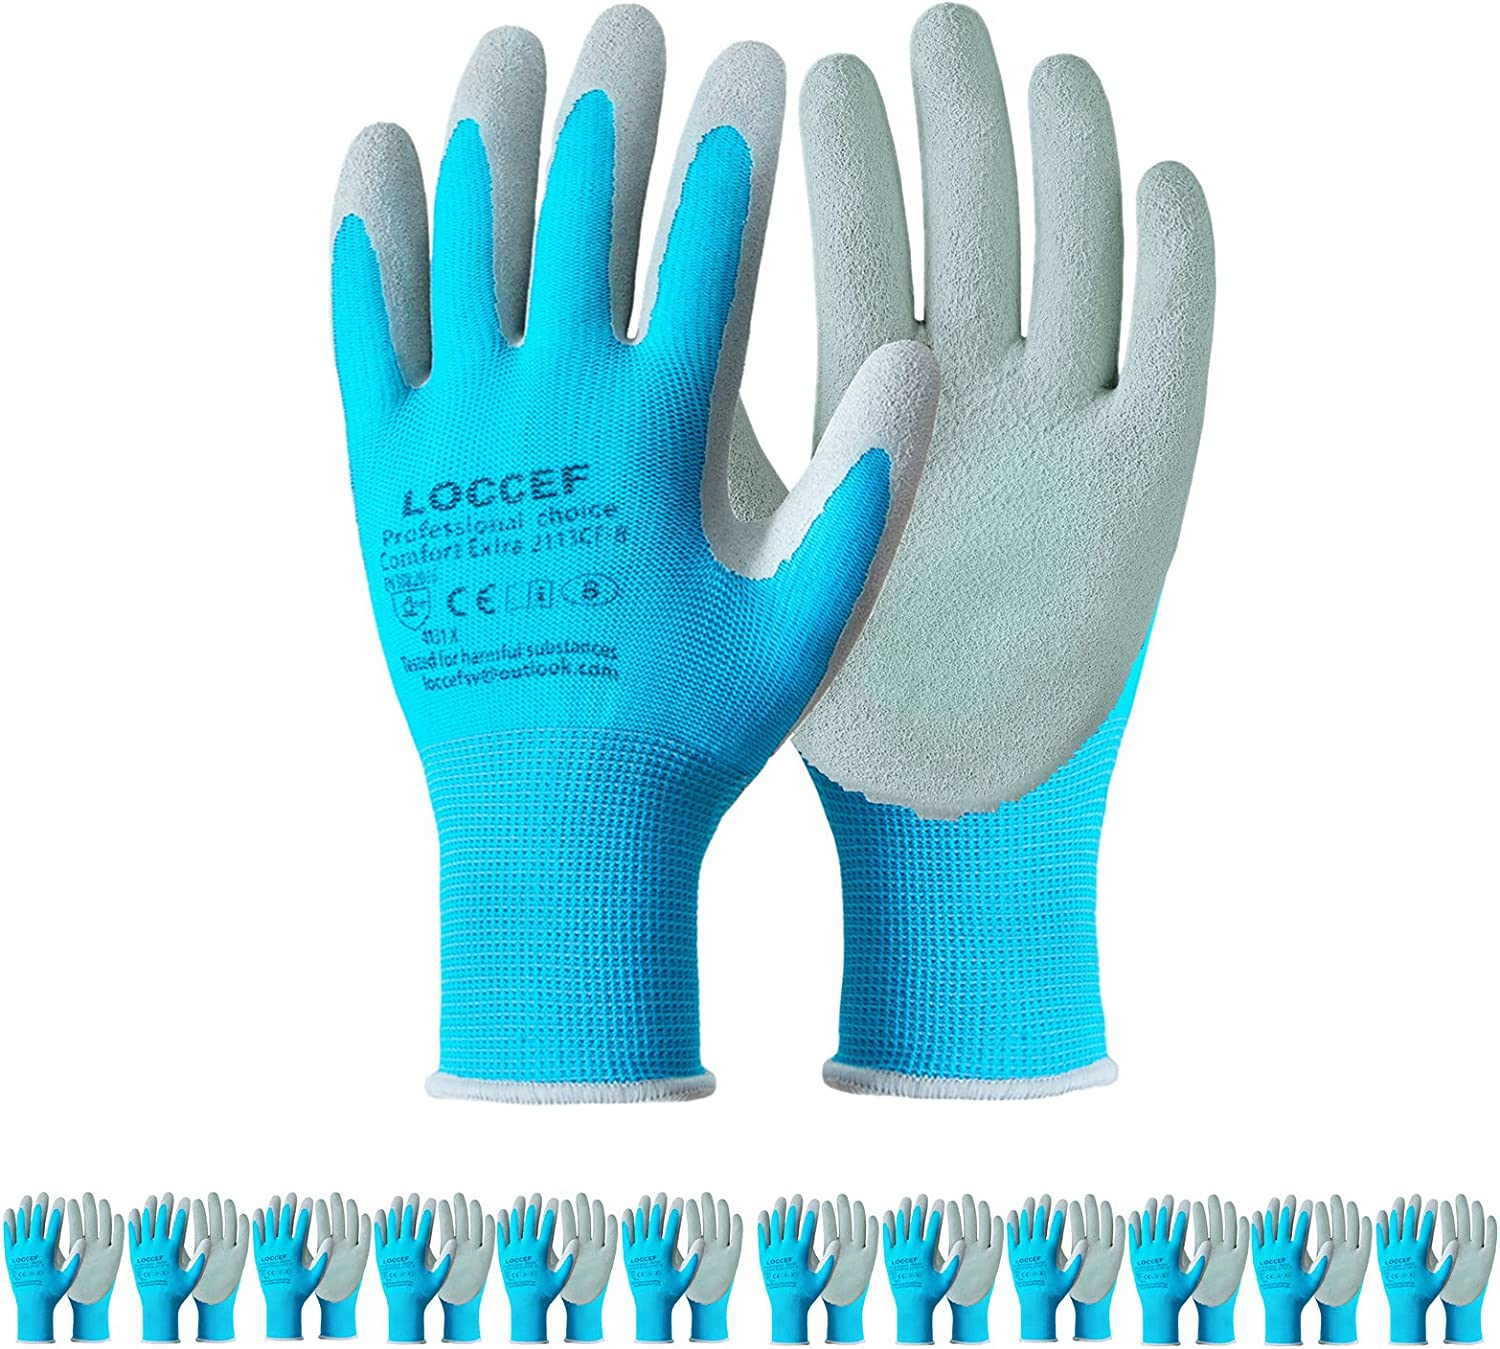 LOCCEF Gardening Gloves,6 or 12 Pairs Breathable Rubber Coated Garden Gloves,Construction,Home Improvement Work Gloves,M Size